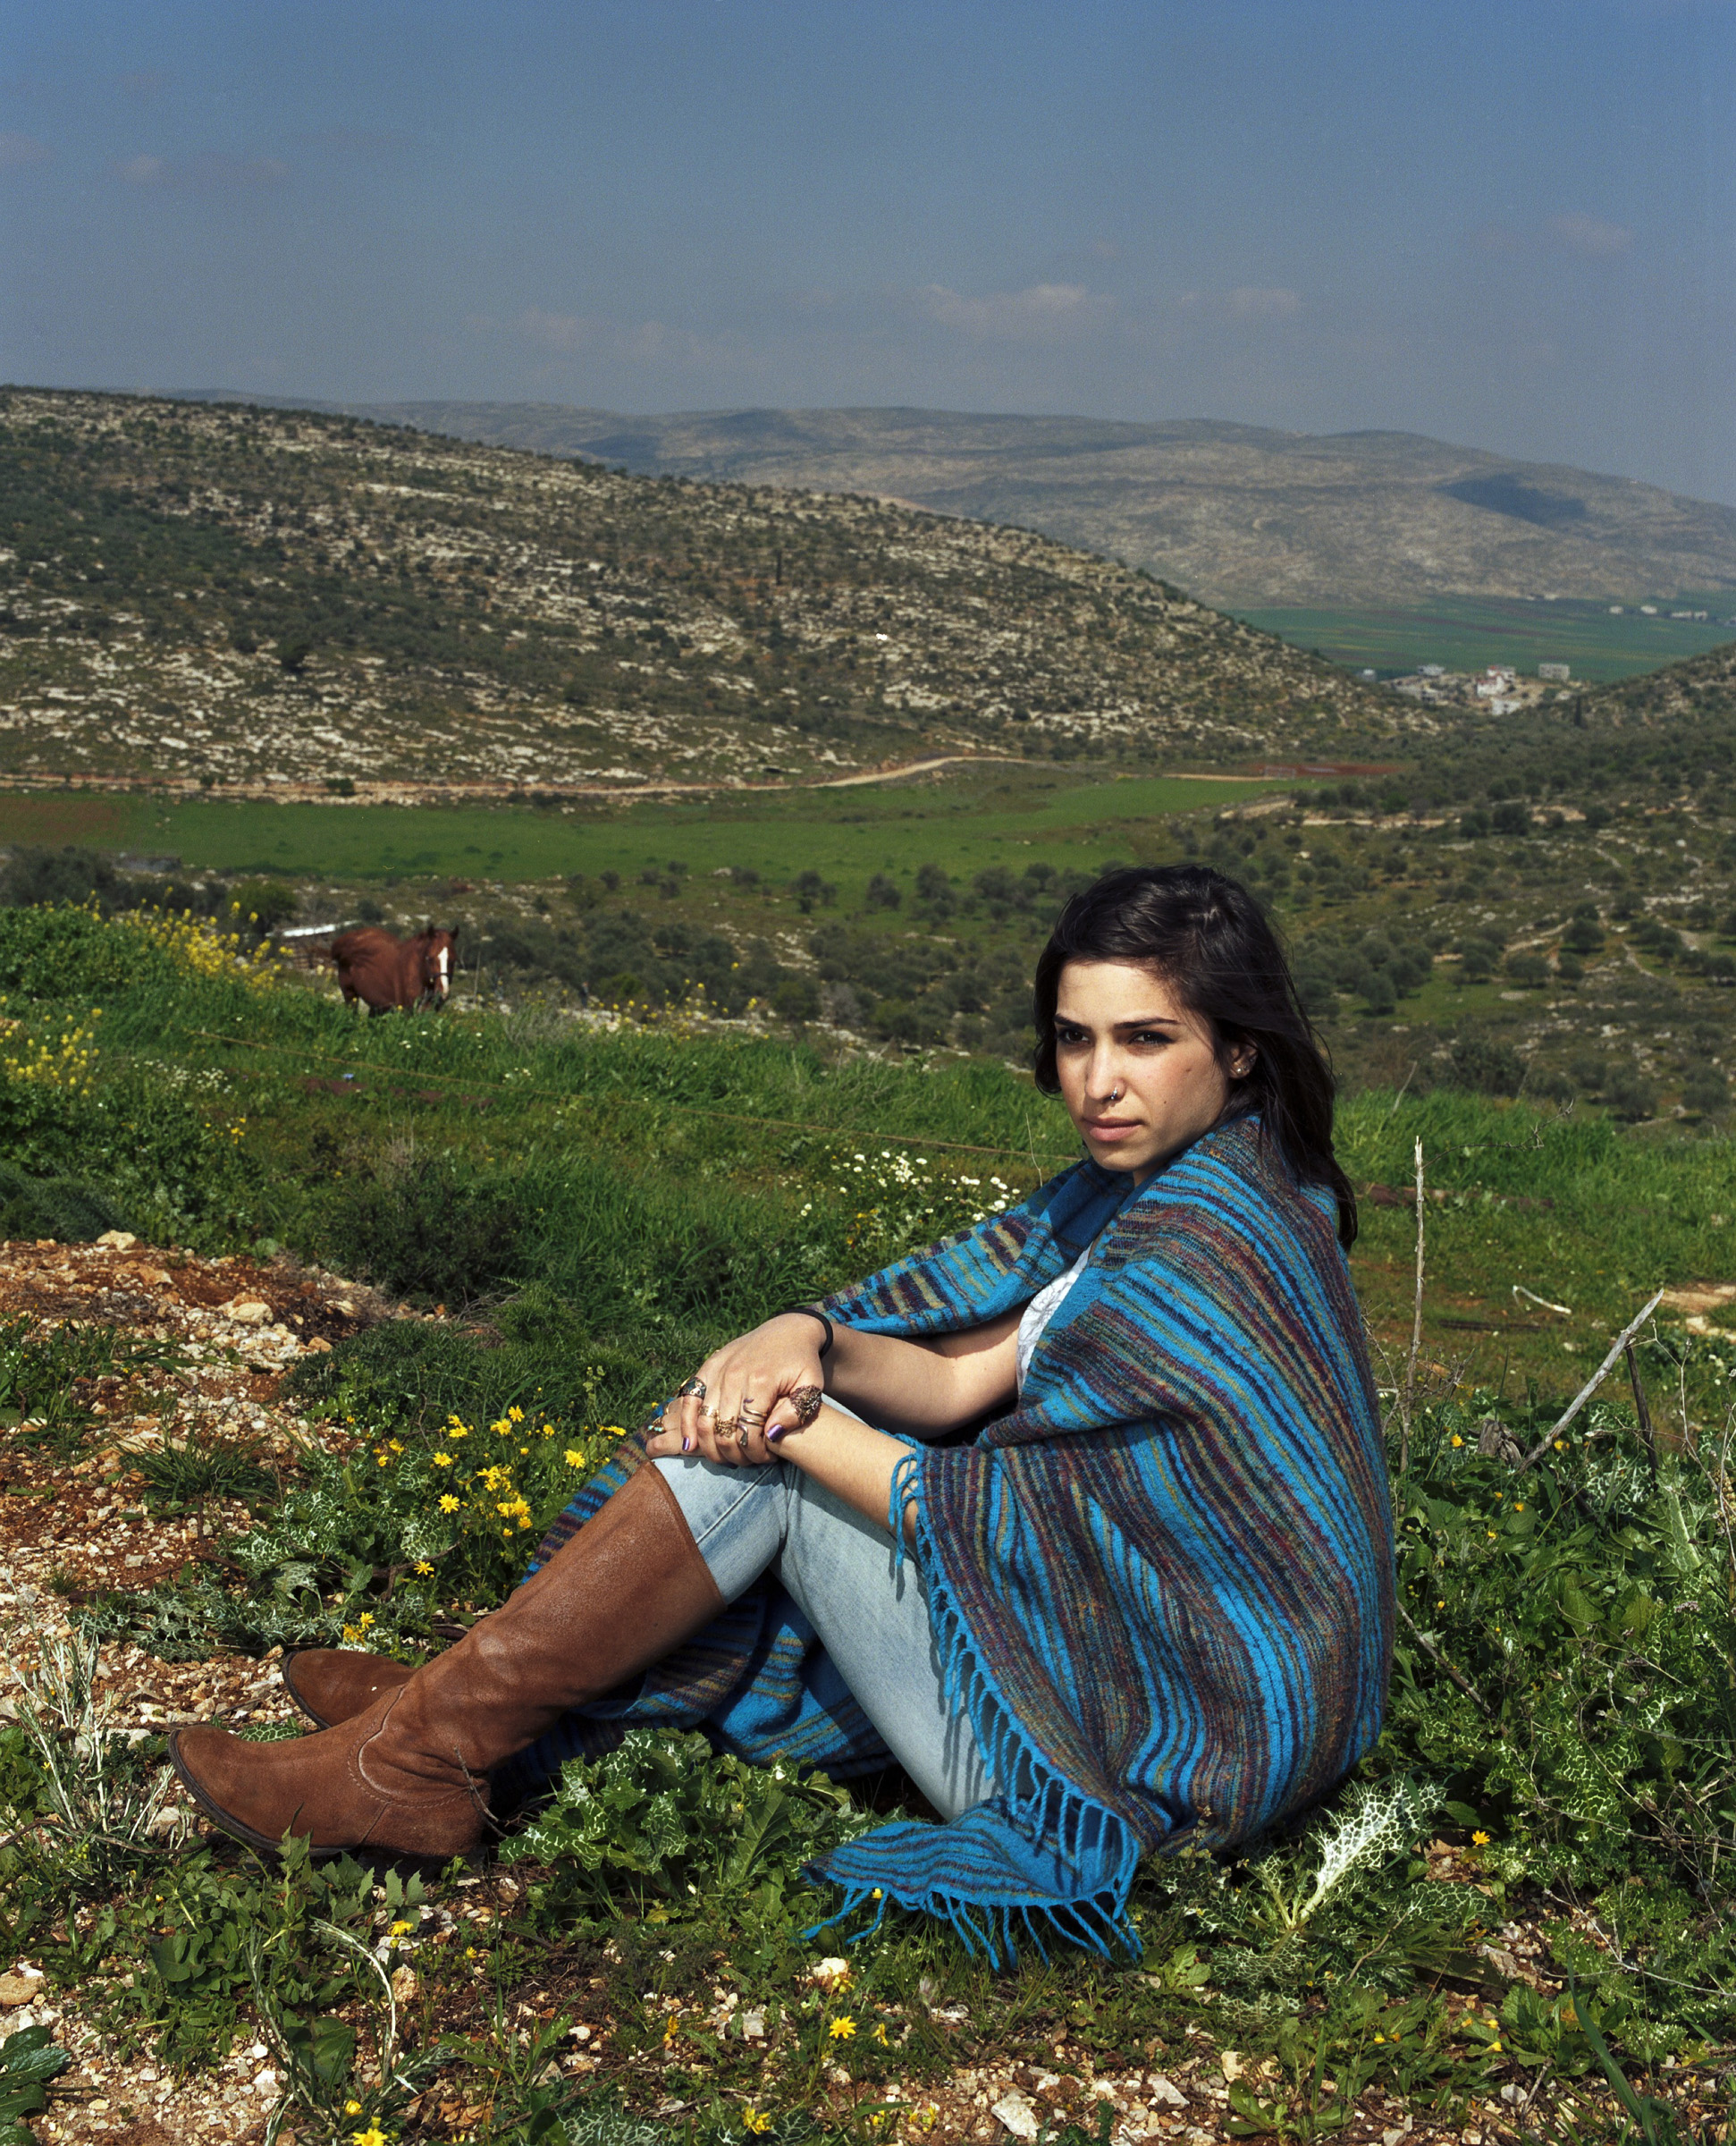 Moriya, 2011   Moriya Goldberg, 19, was too homesick to stick it out at Ben Zimra's sleepaway school, but she considers herself almost an honorary graduate. She spent 40 days in jail protesting the evacuation of Gush Katif.